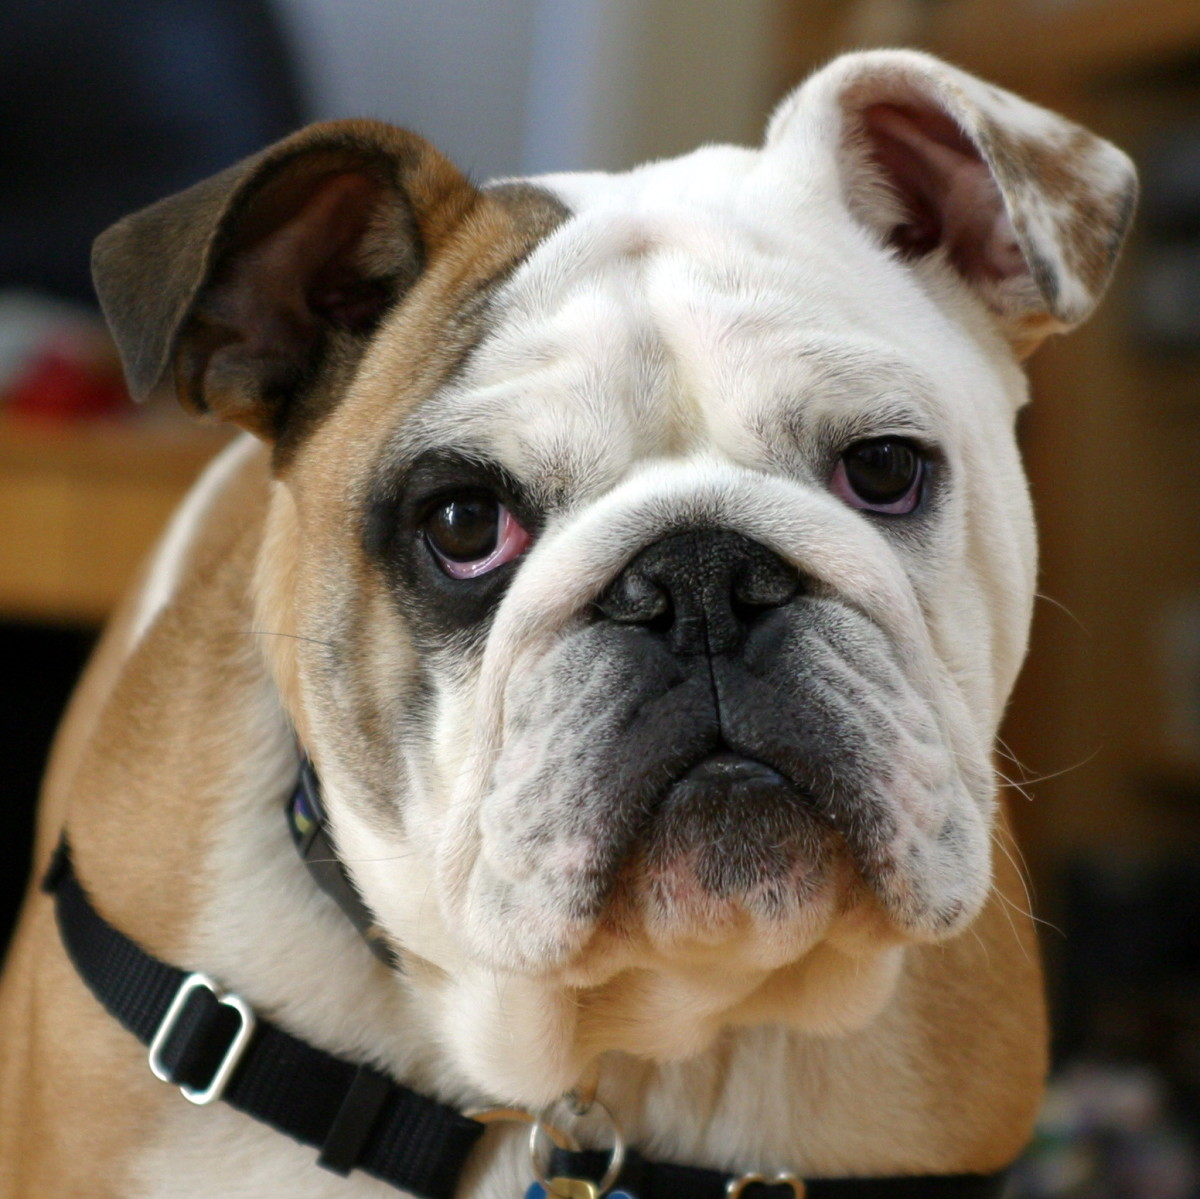 A six-month-old purebred Bulldog. This is a friendly and sometimes willful breed.